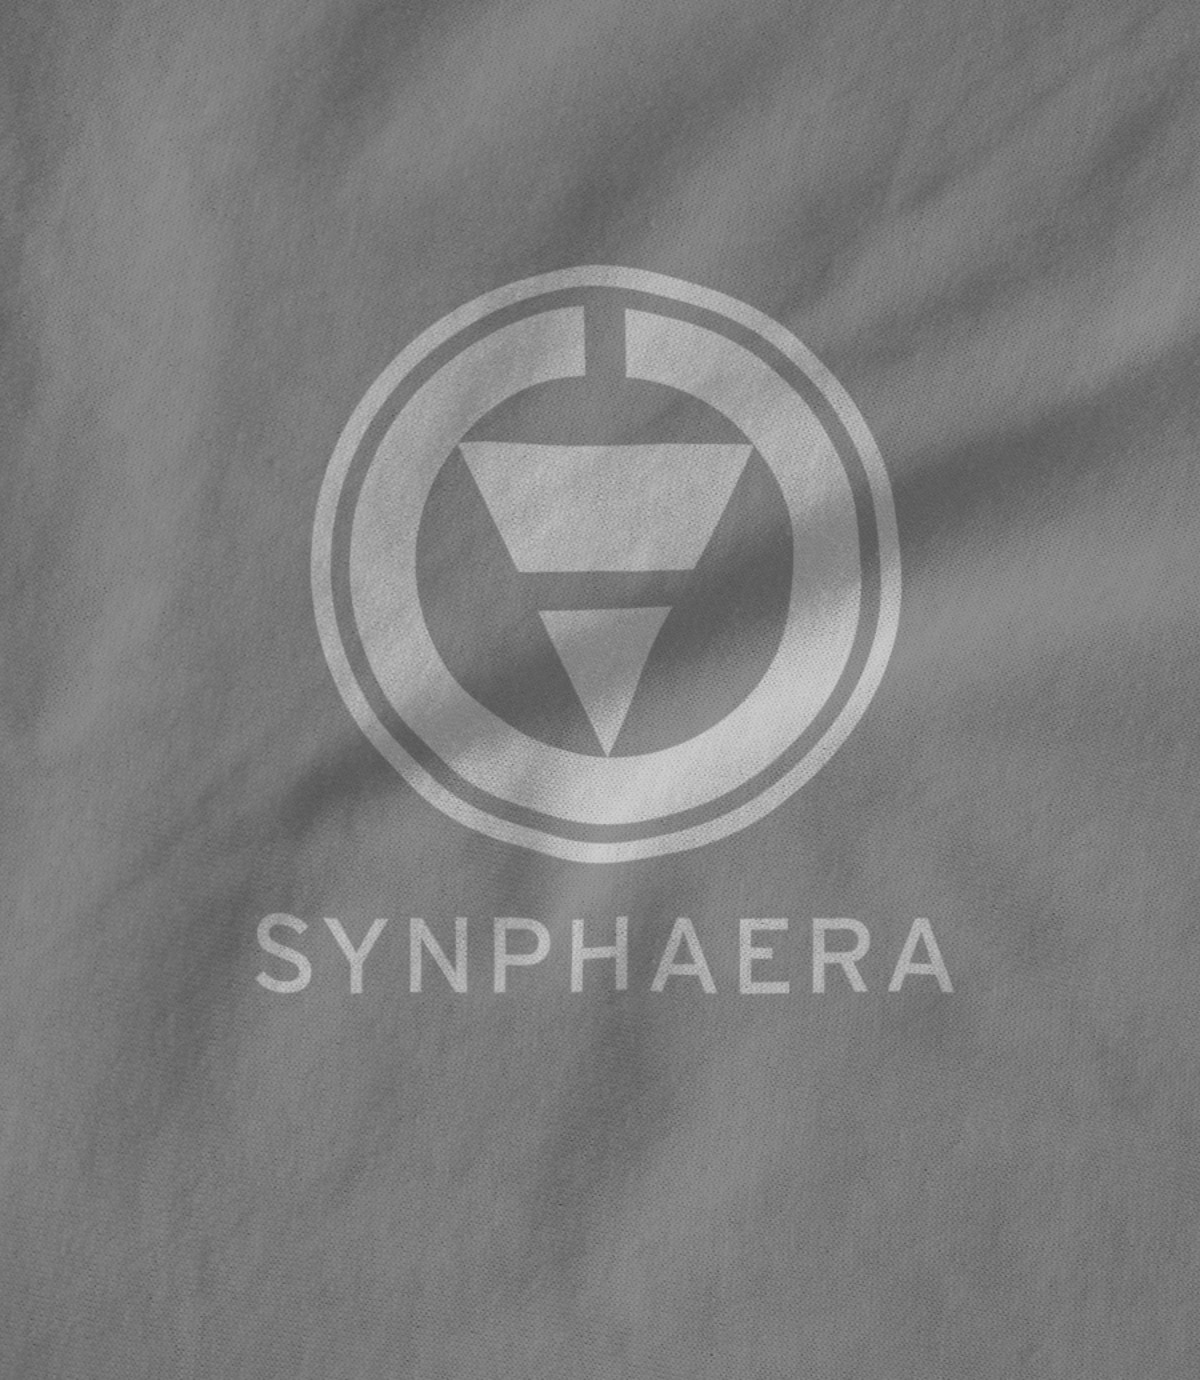 Synphaera records official synphaera records bdwumi